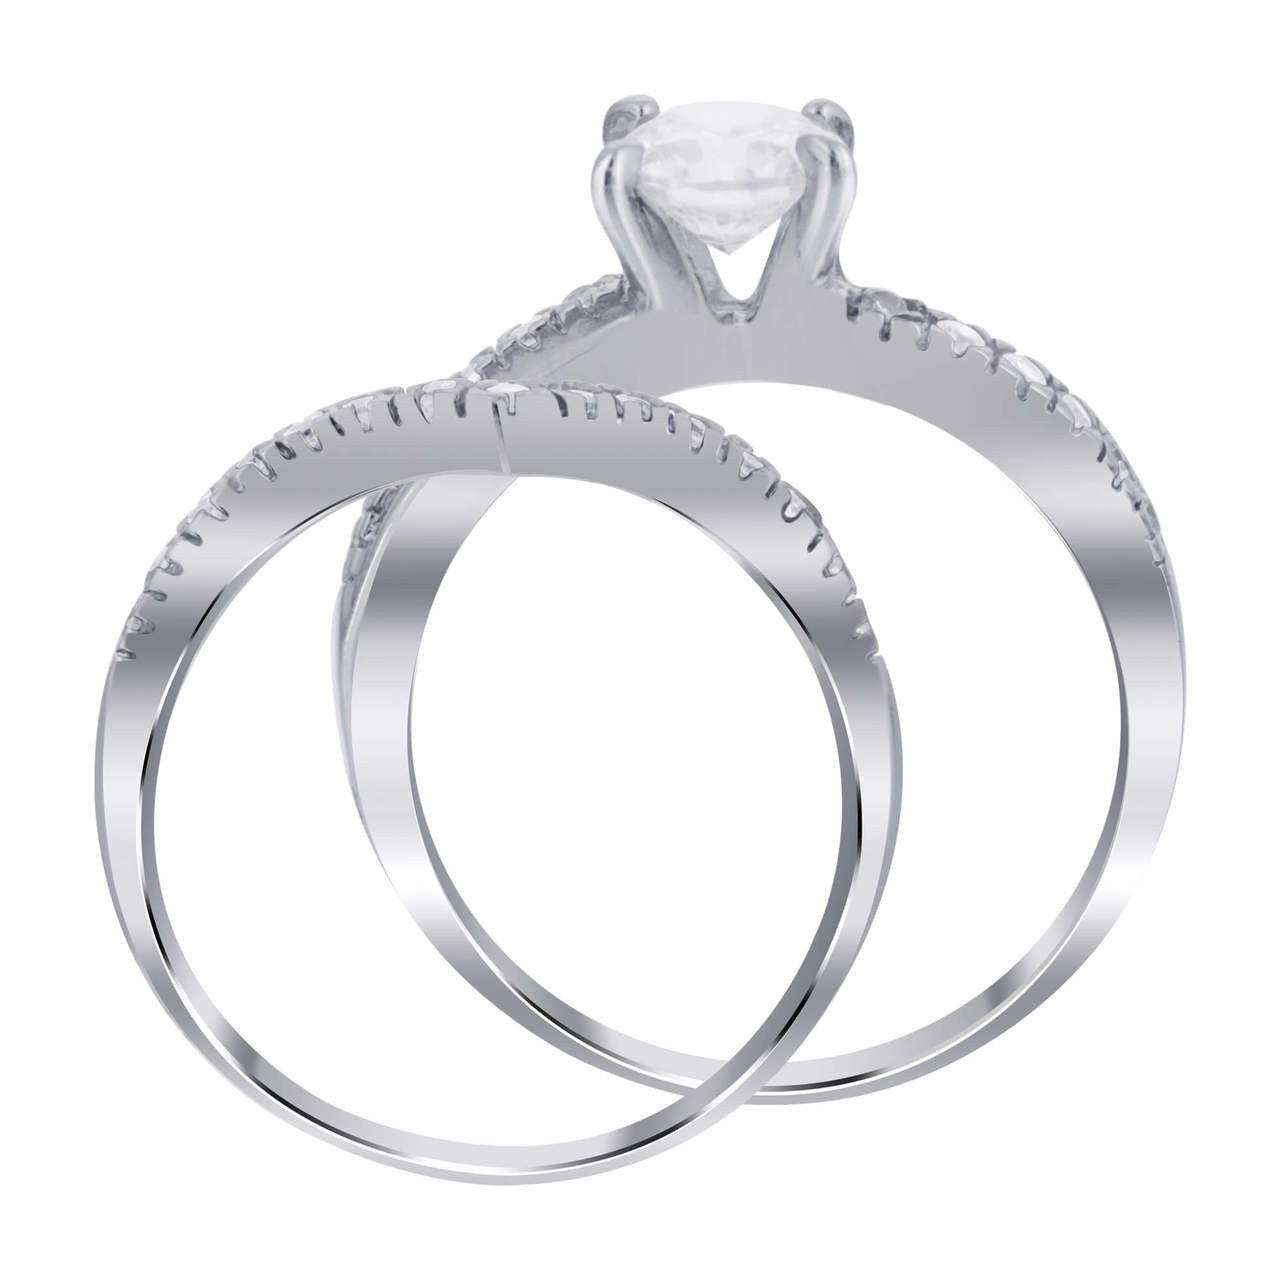 Cubic Zirconia Wedding Band Set